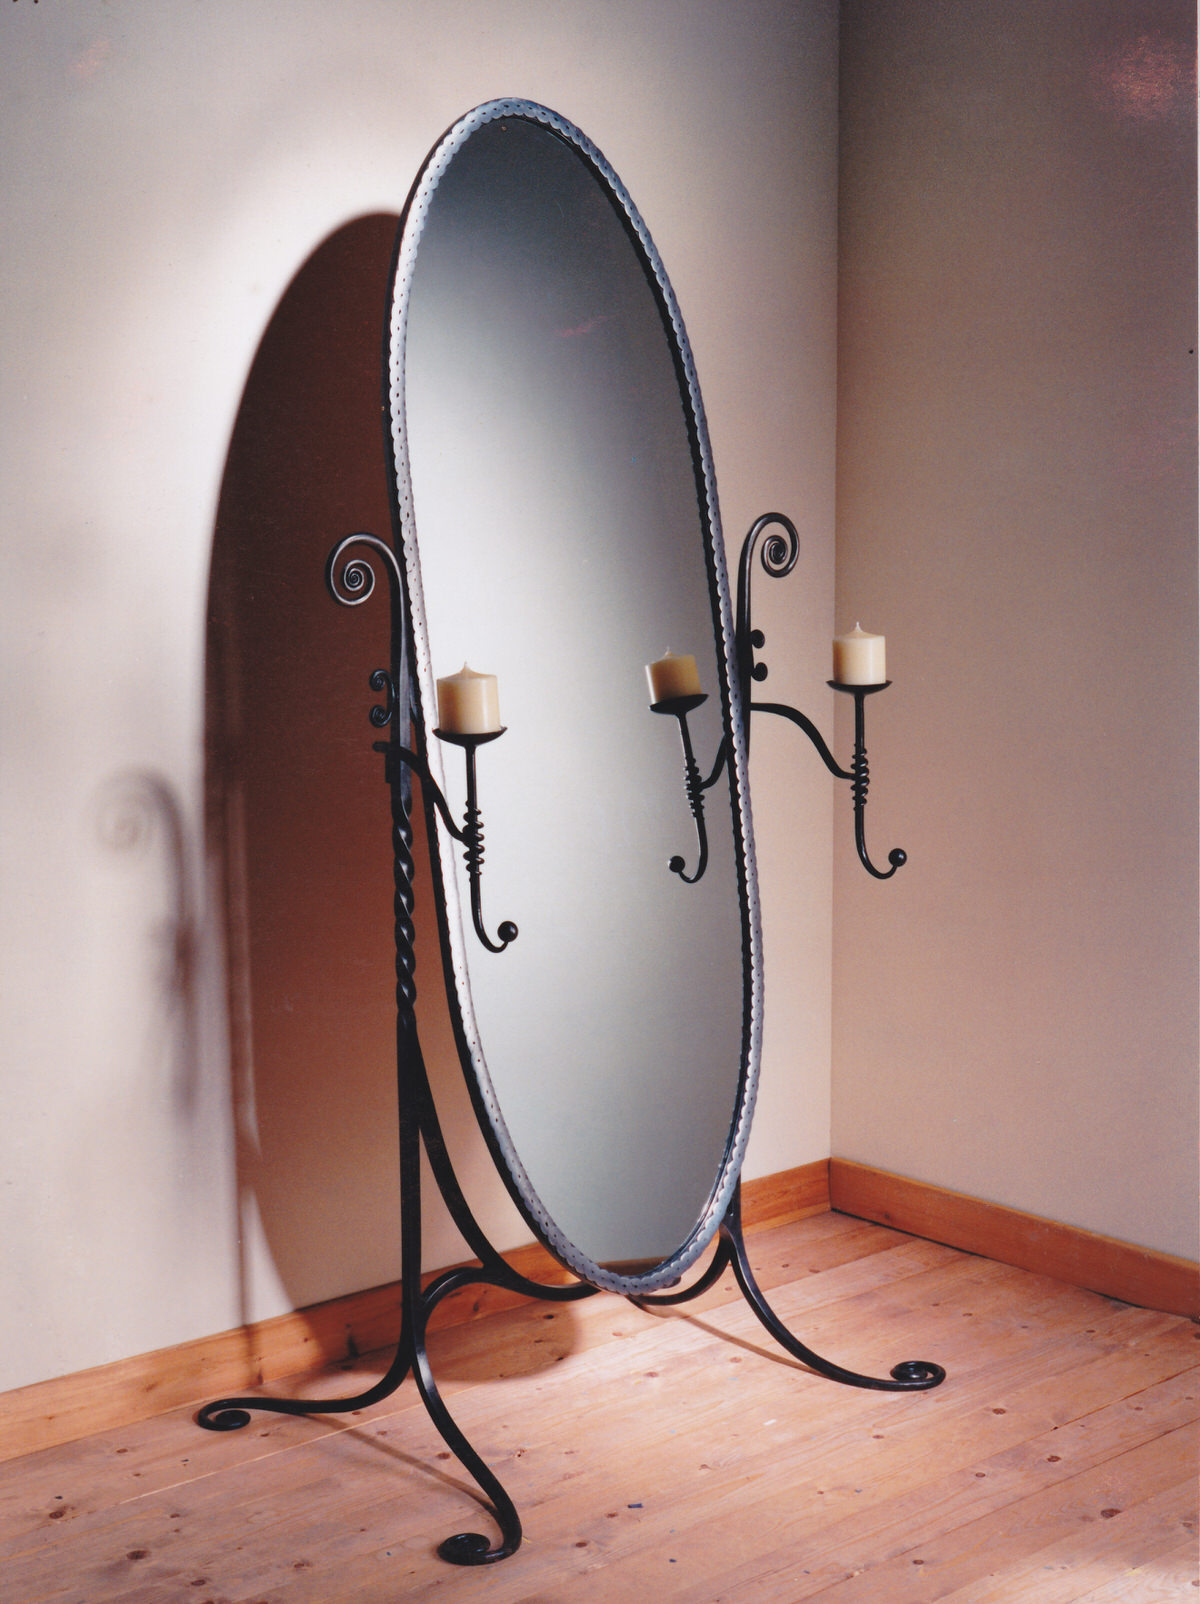 Cheval Mirror bespoke stunning designer mirror for interior designed bedroom furniture Decores USA New York by Mark Reed